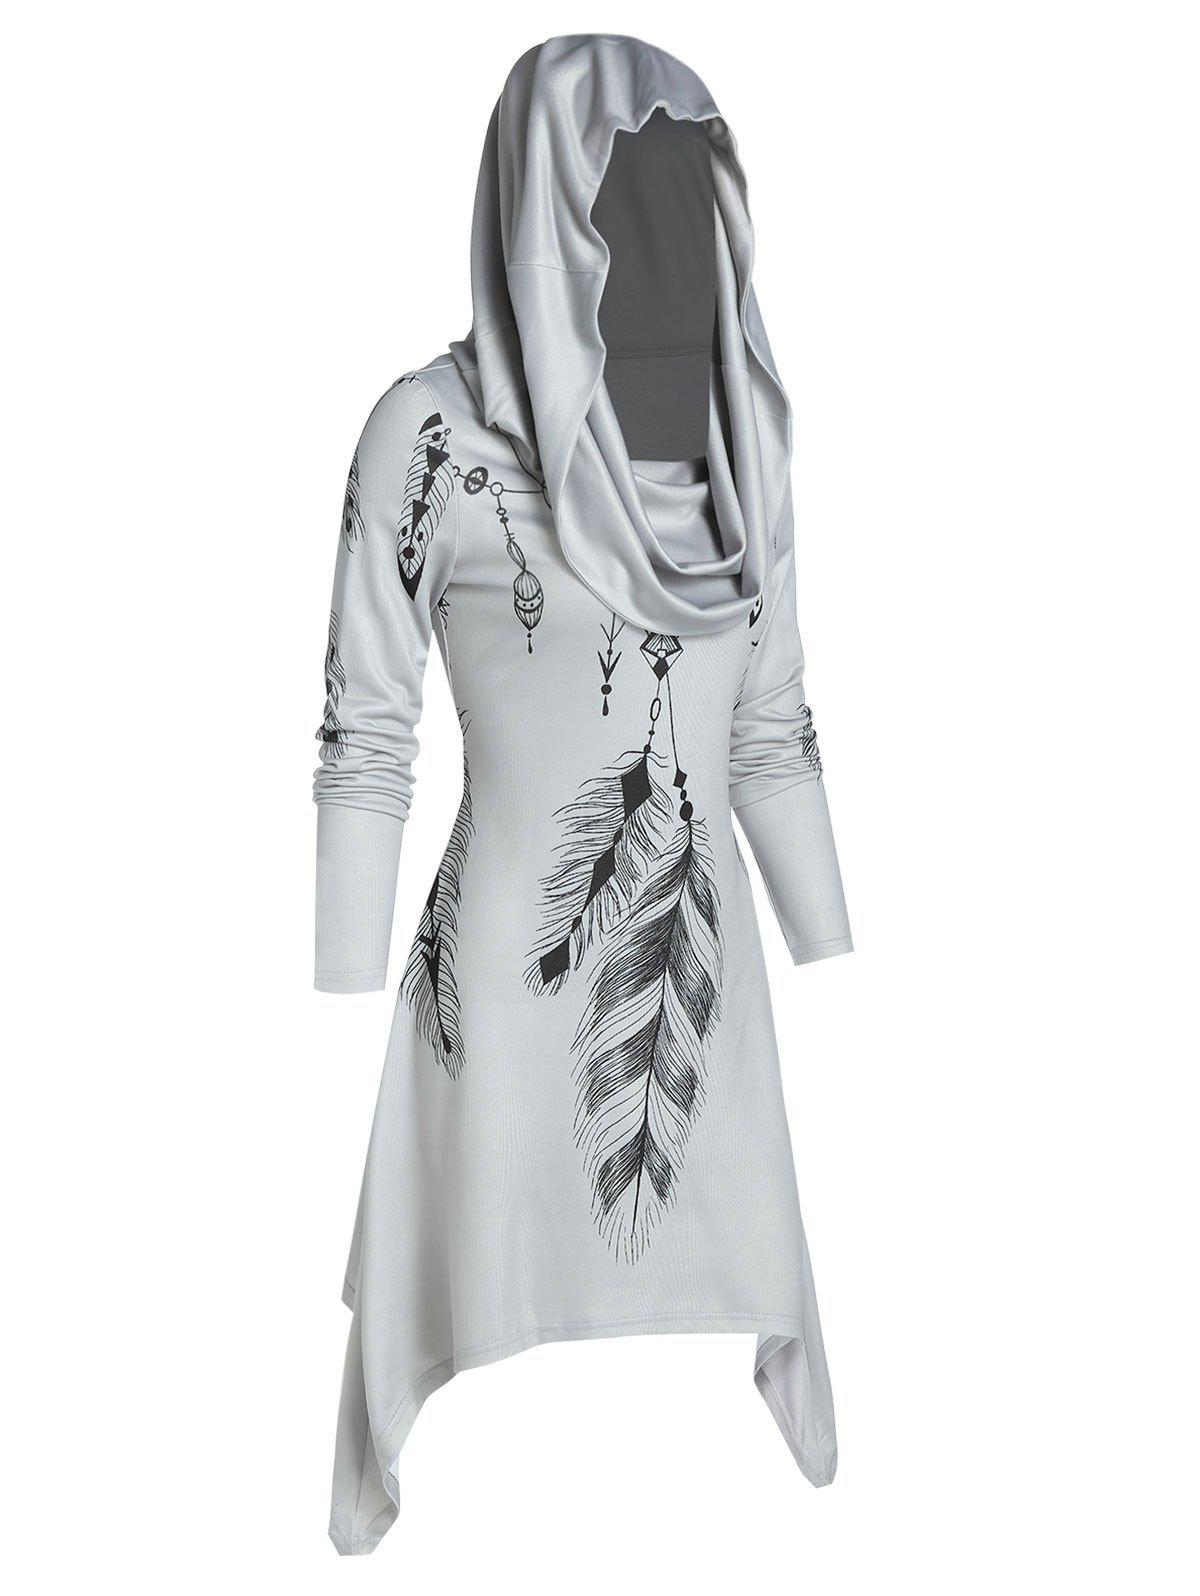 Hooded Feather Print Convertible Dress - LIGHT GRAY M